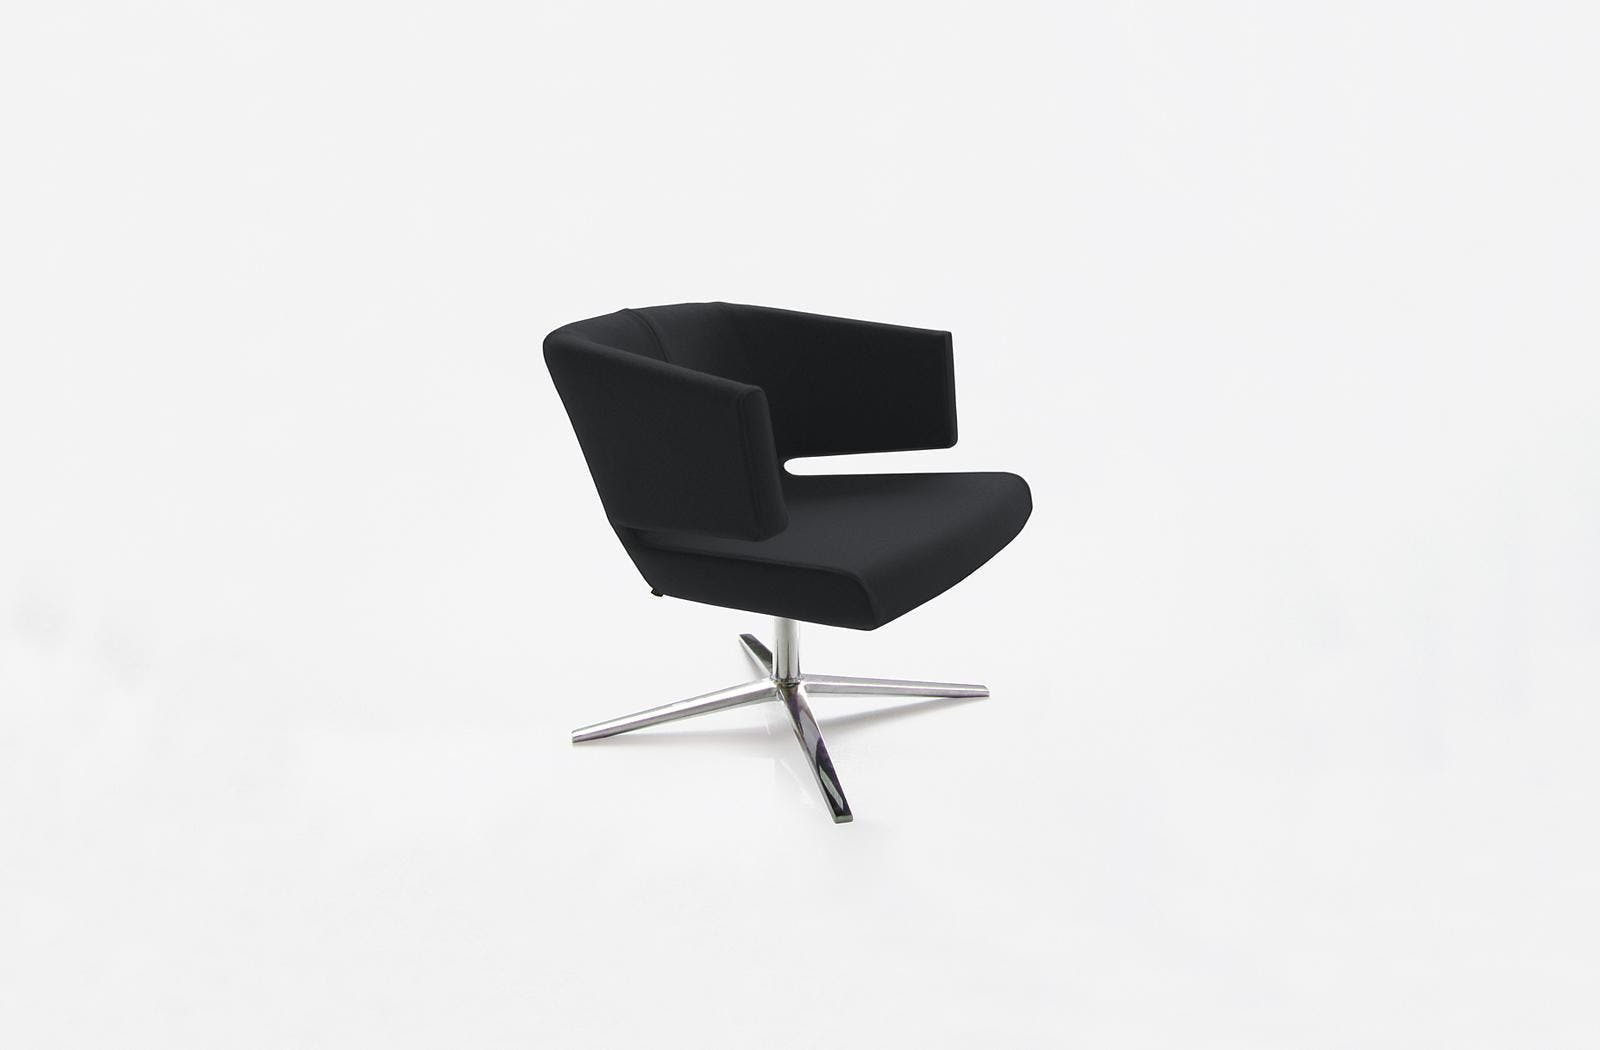 Bensen Black Lotus Chair Front Angle